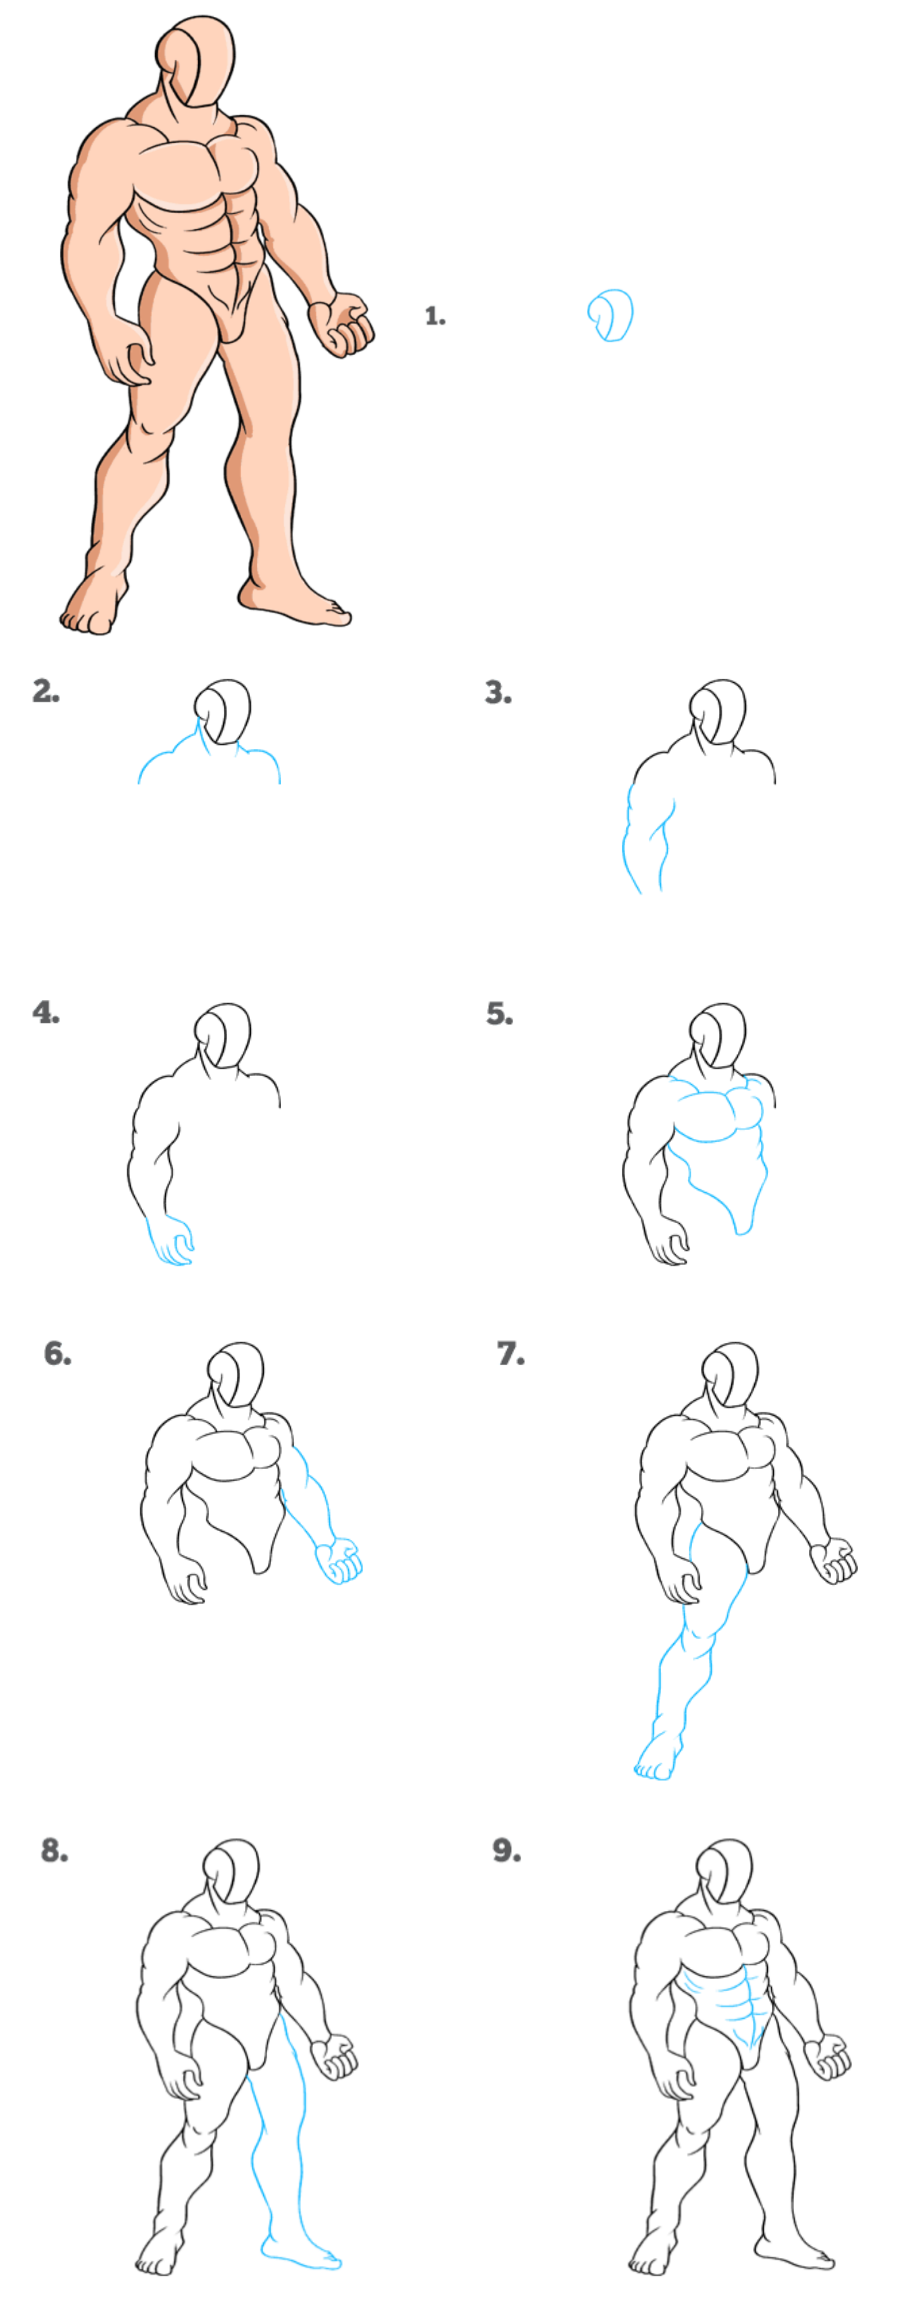 How to draw muscle